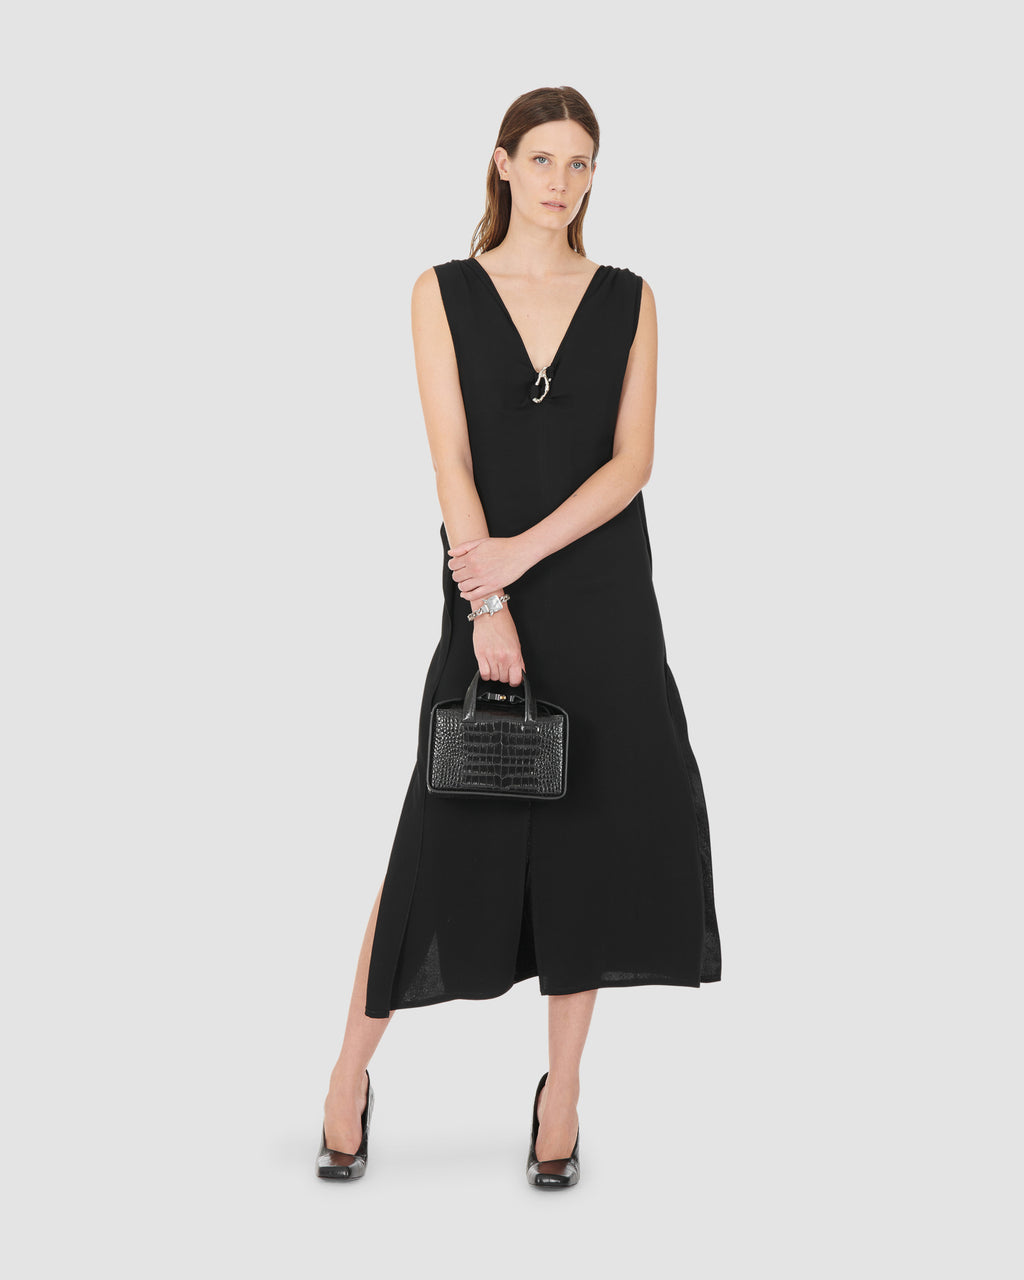 1017 ALYX 9SM | ANTONIA DRESS | Dress | Black, Dresses, Google Shopping, S20, S20 Drop II, Woman, WOMEN